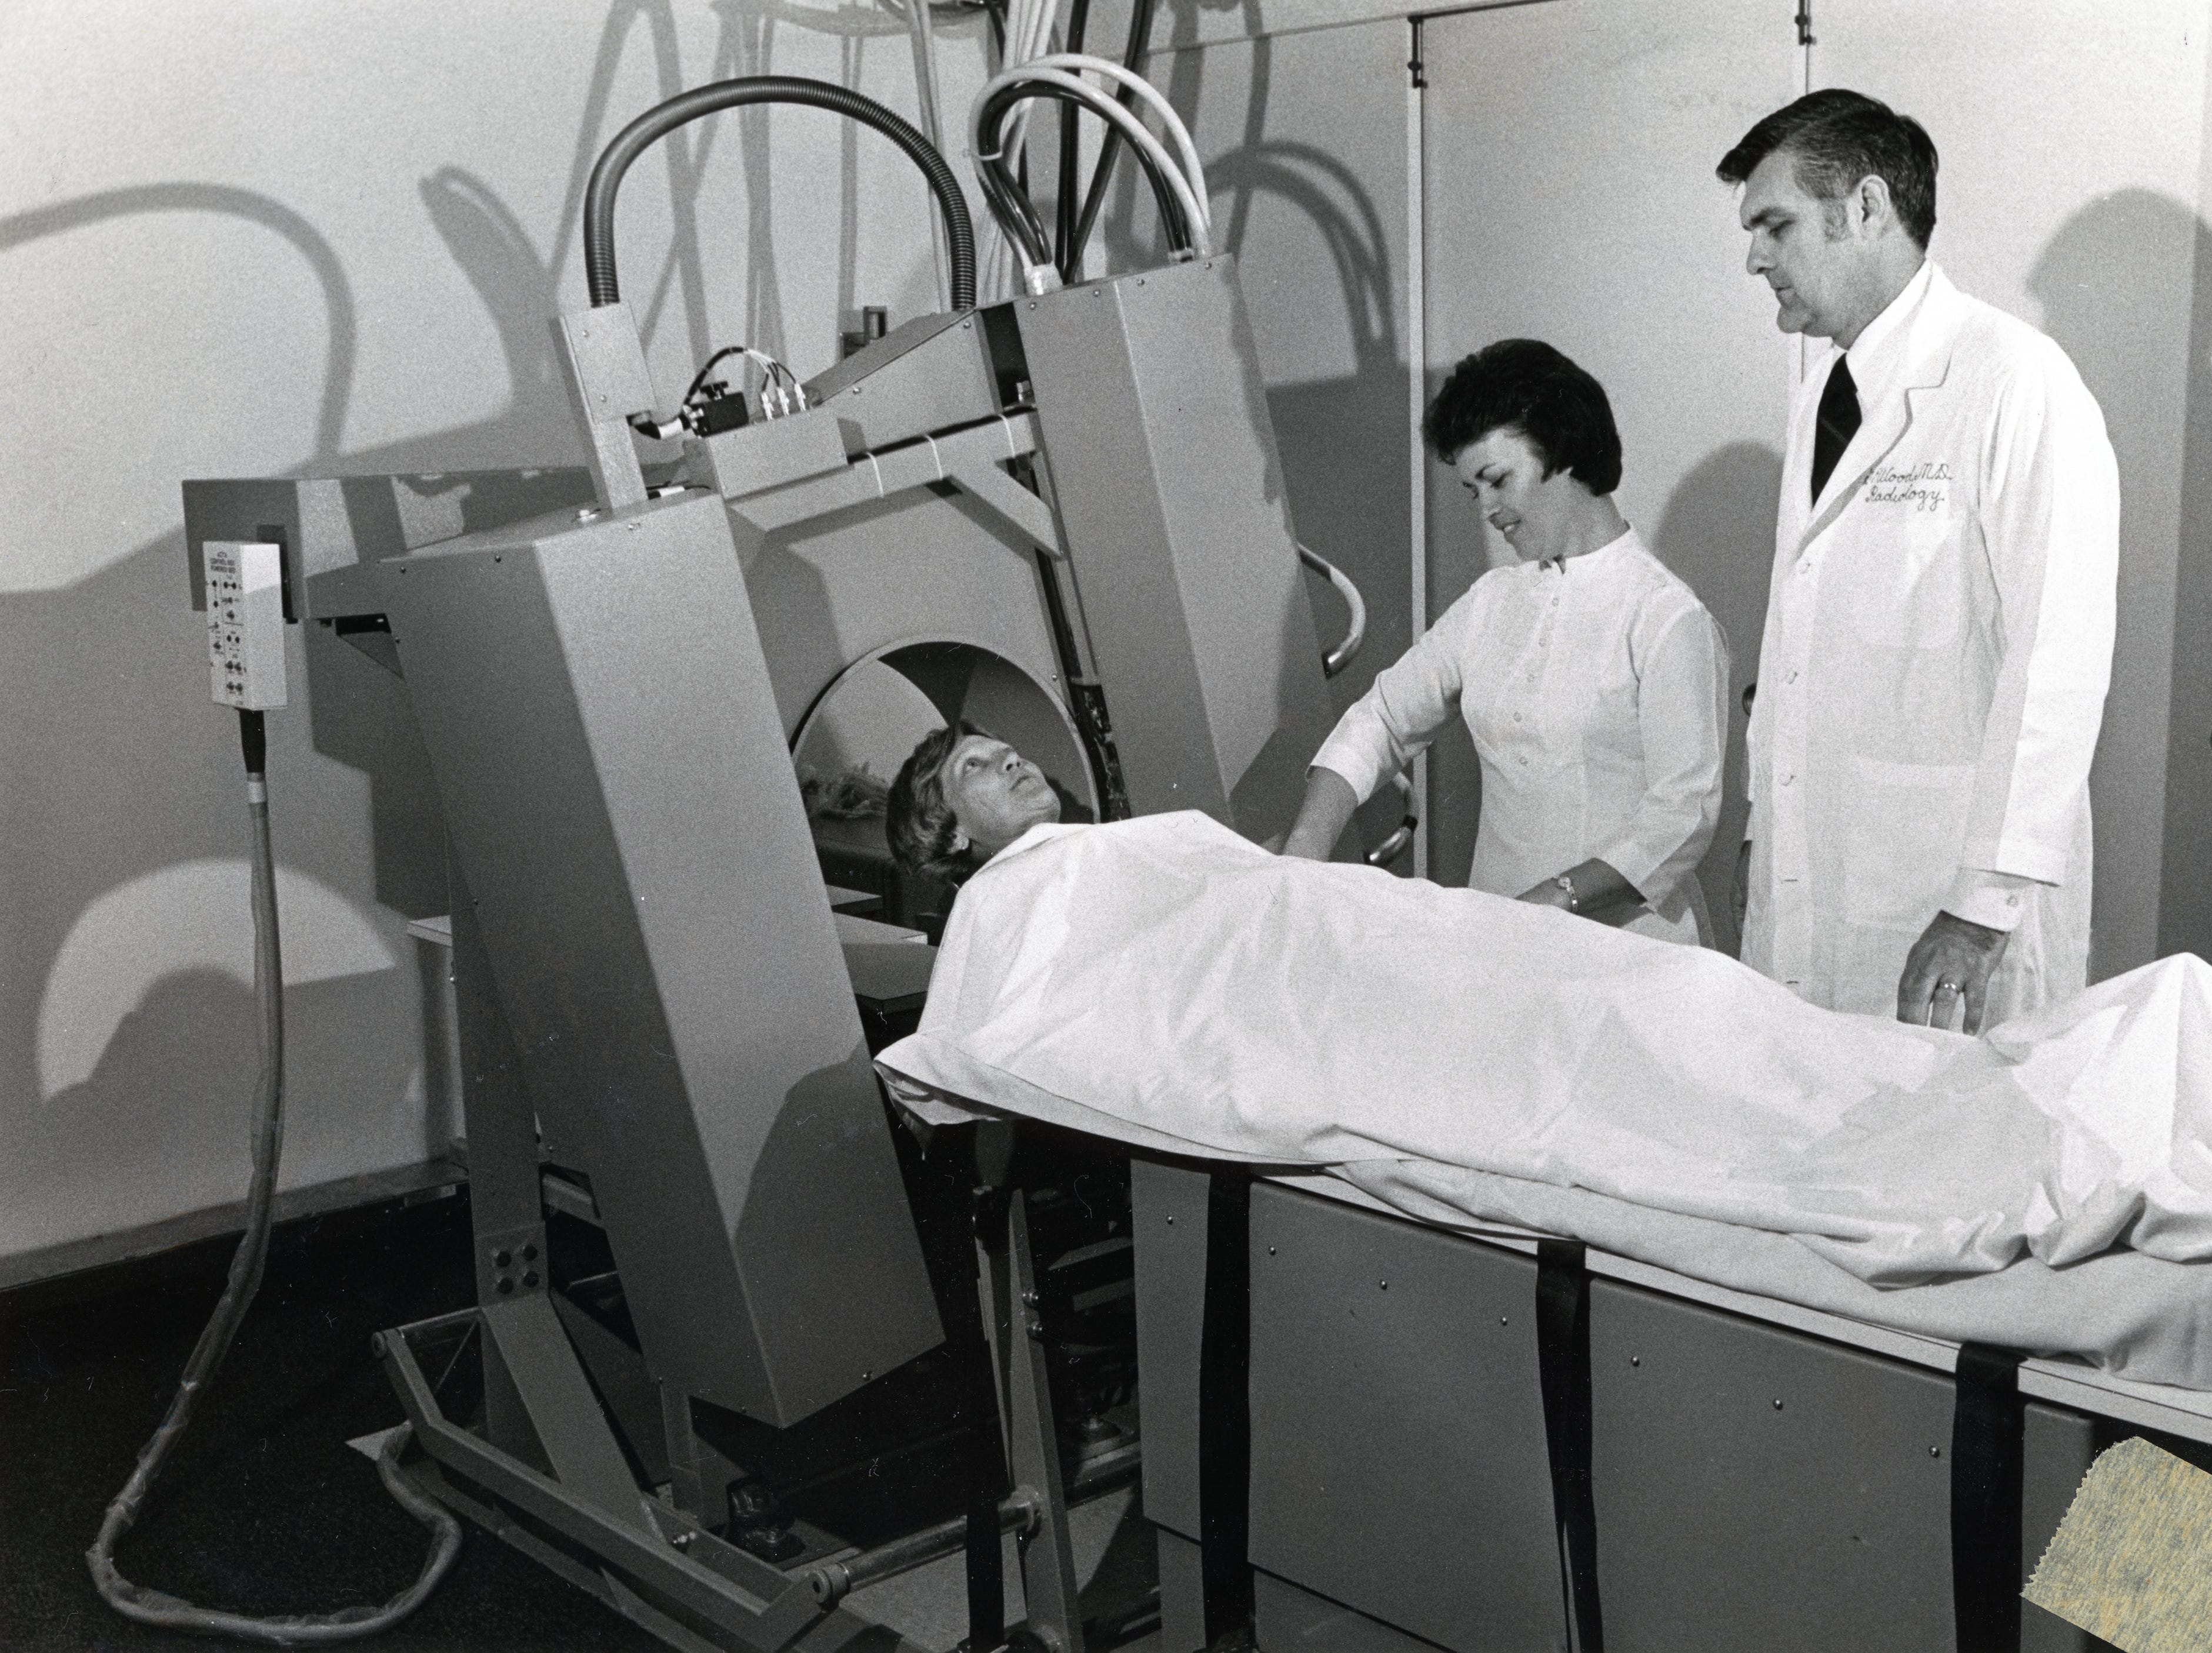 Joyce Norman, work coordinator, is used as a model on the whole body scanner at St. Mary's Medical Center in April 1976. Technologist Nellie Thomas and Dr. George Woods watch.